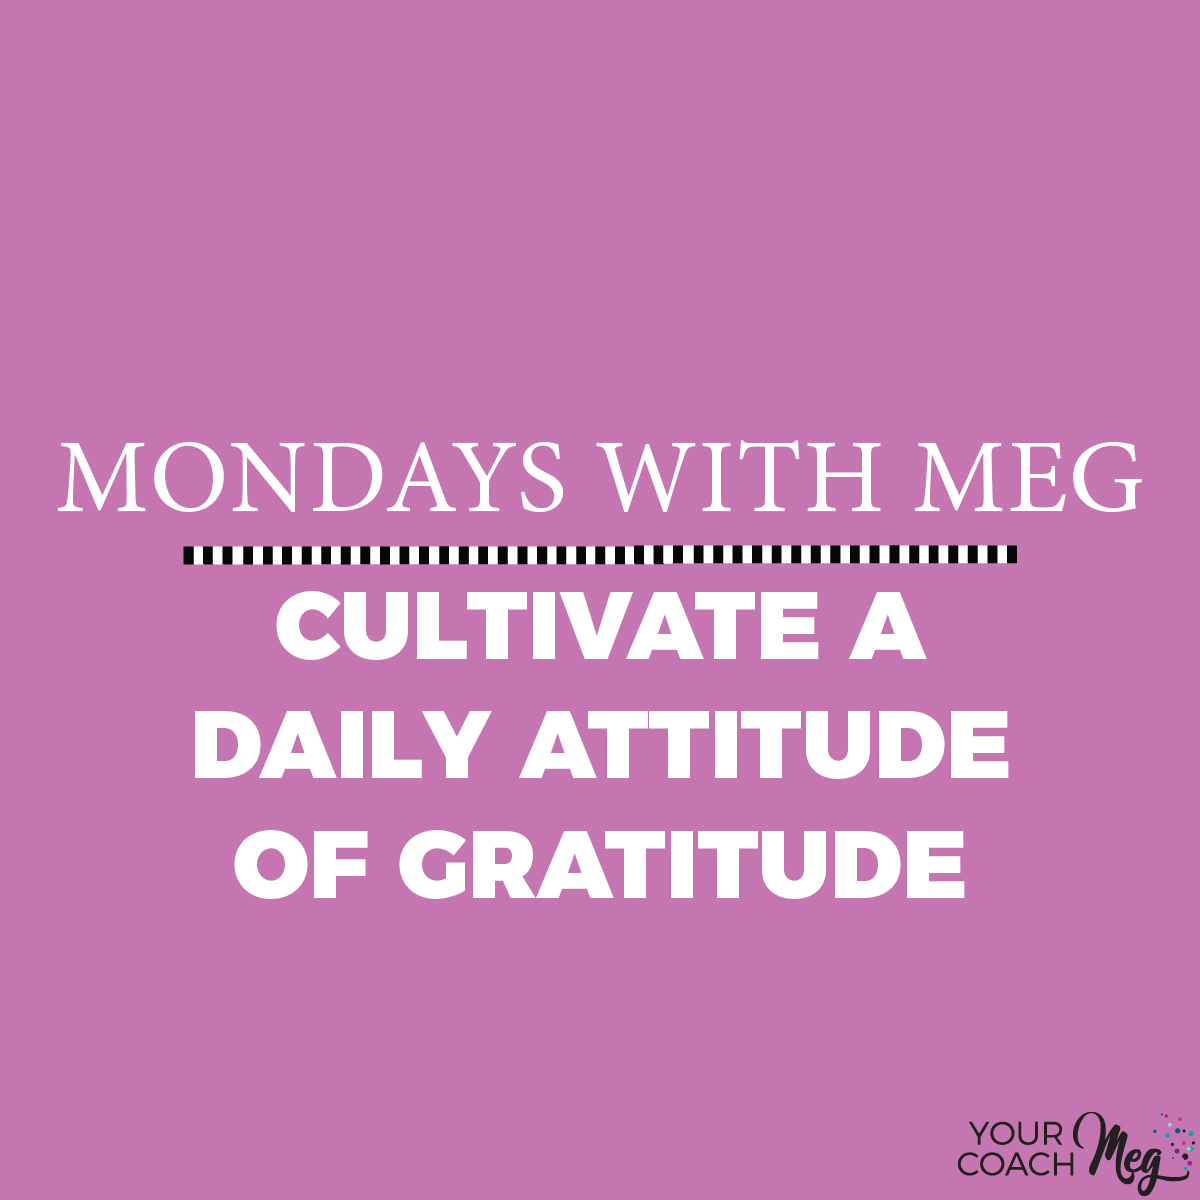 MONDAYS WITH MEG: ATTITUDE OF GRATITUDE